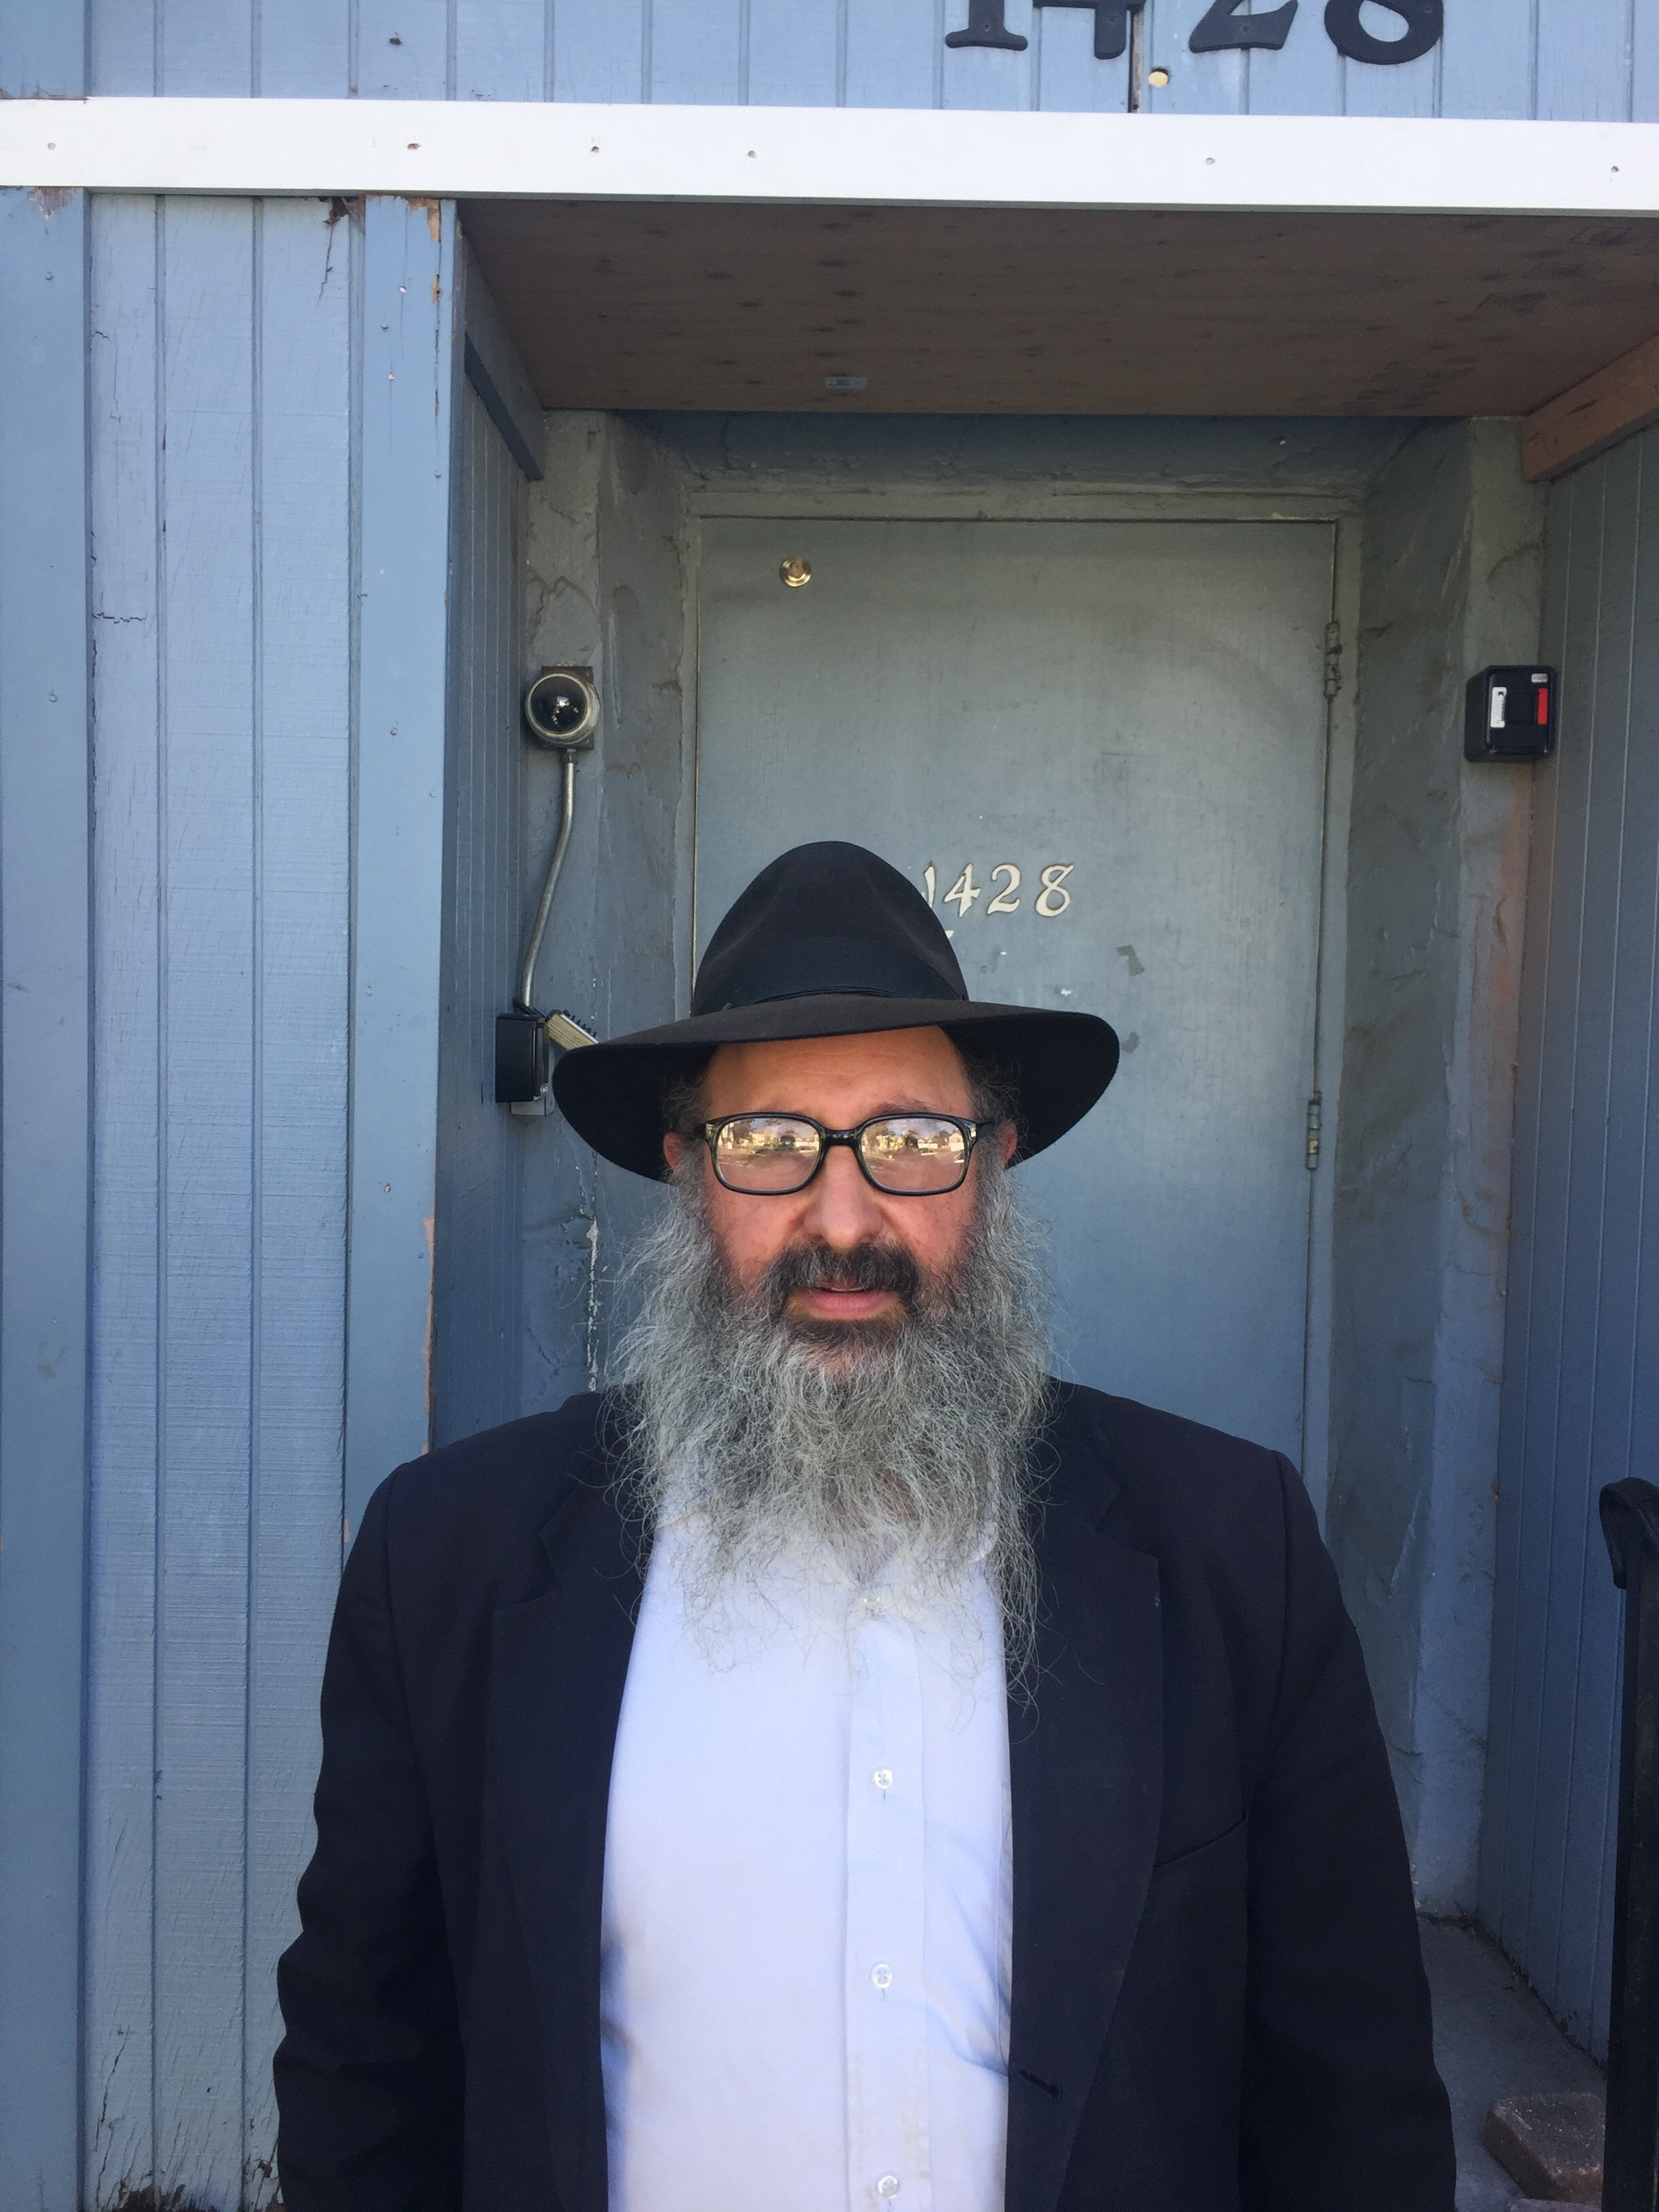 Rabbi Isaac Levitanksy stands outside Chabad House Synagogue in Santa Monica, California, on Thursday, November 1st, at 10:30 am. (Jazz Boothby/ Corsair Staff)